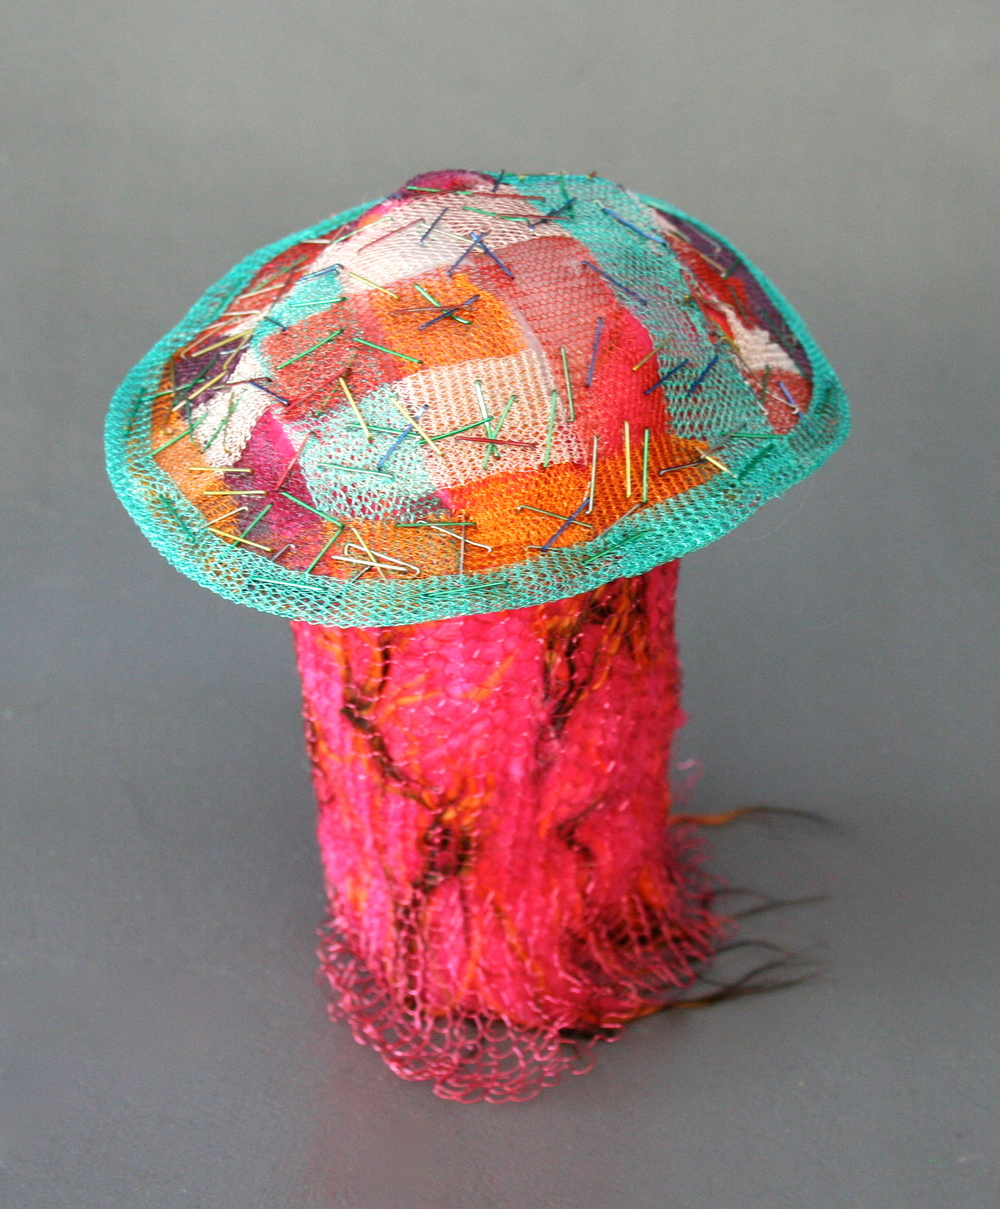 Woven ribbons of wire knit stapled together with colored staples, trimmed in wire knit, on a wire knit cage with faux fur inside